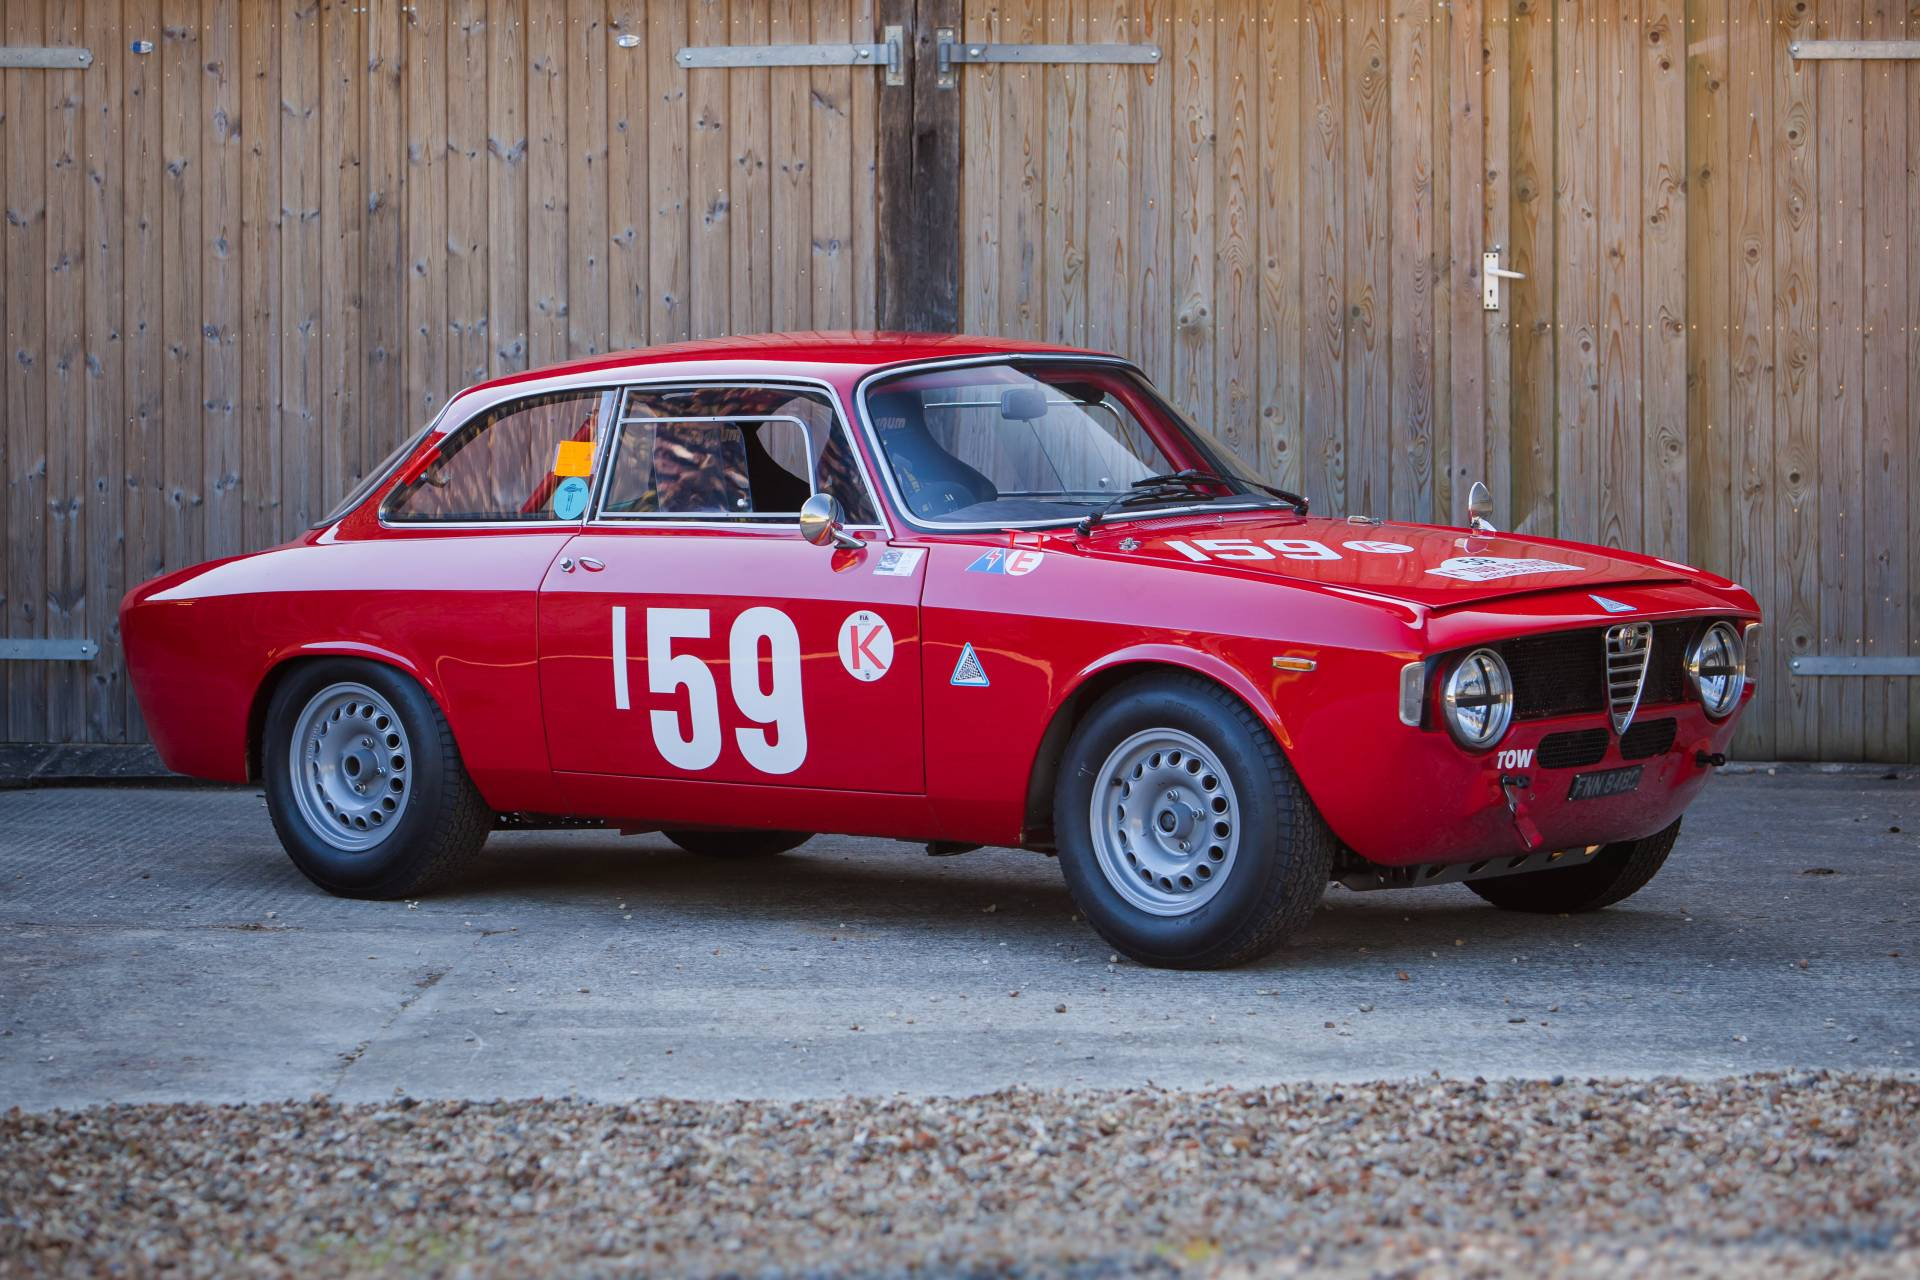 for sale alfa romeo giulia sprint gta racing 1965 offered for gbp 135 000. Black Bedroom Furniture Sets. Home Design Ideas